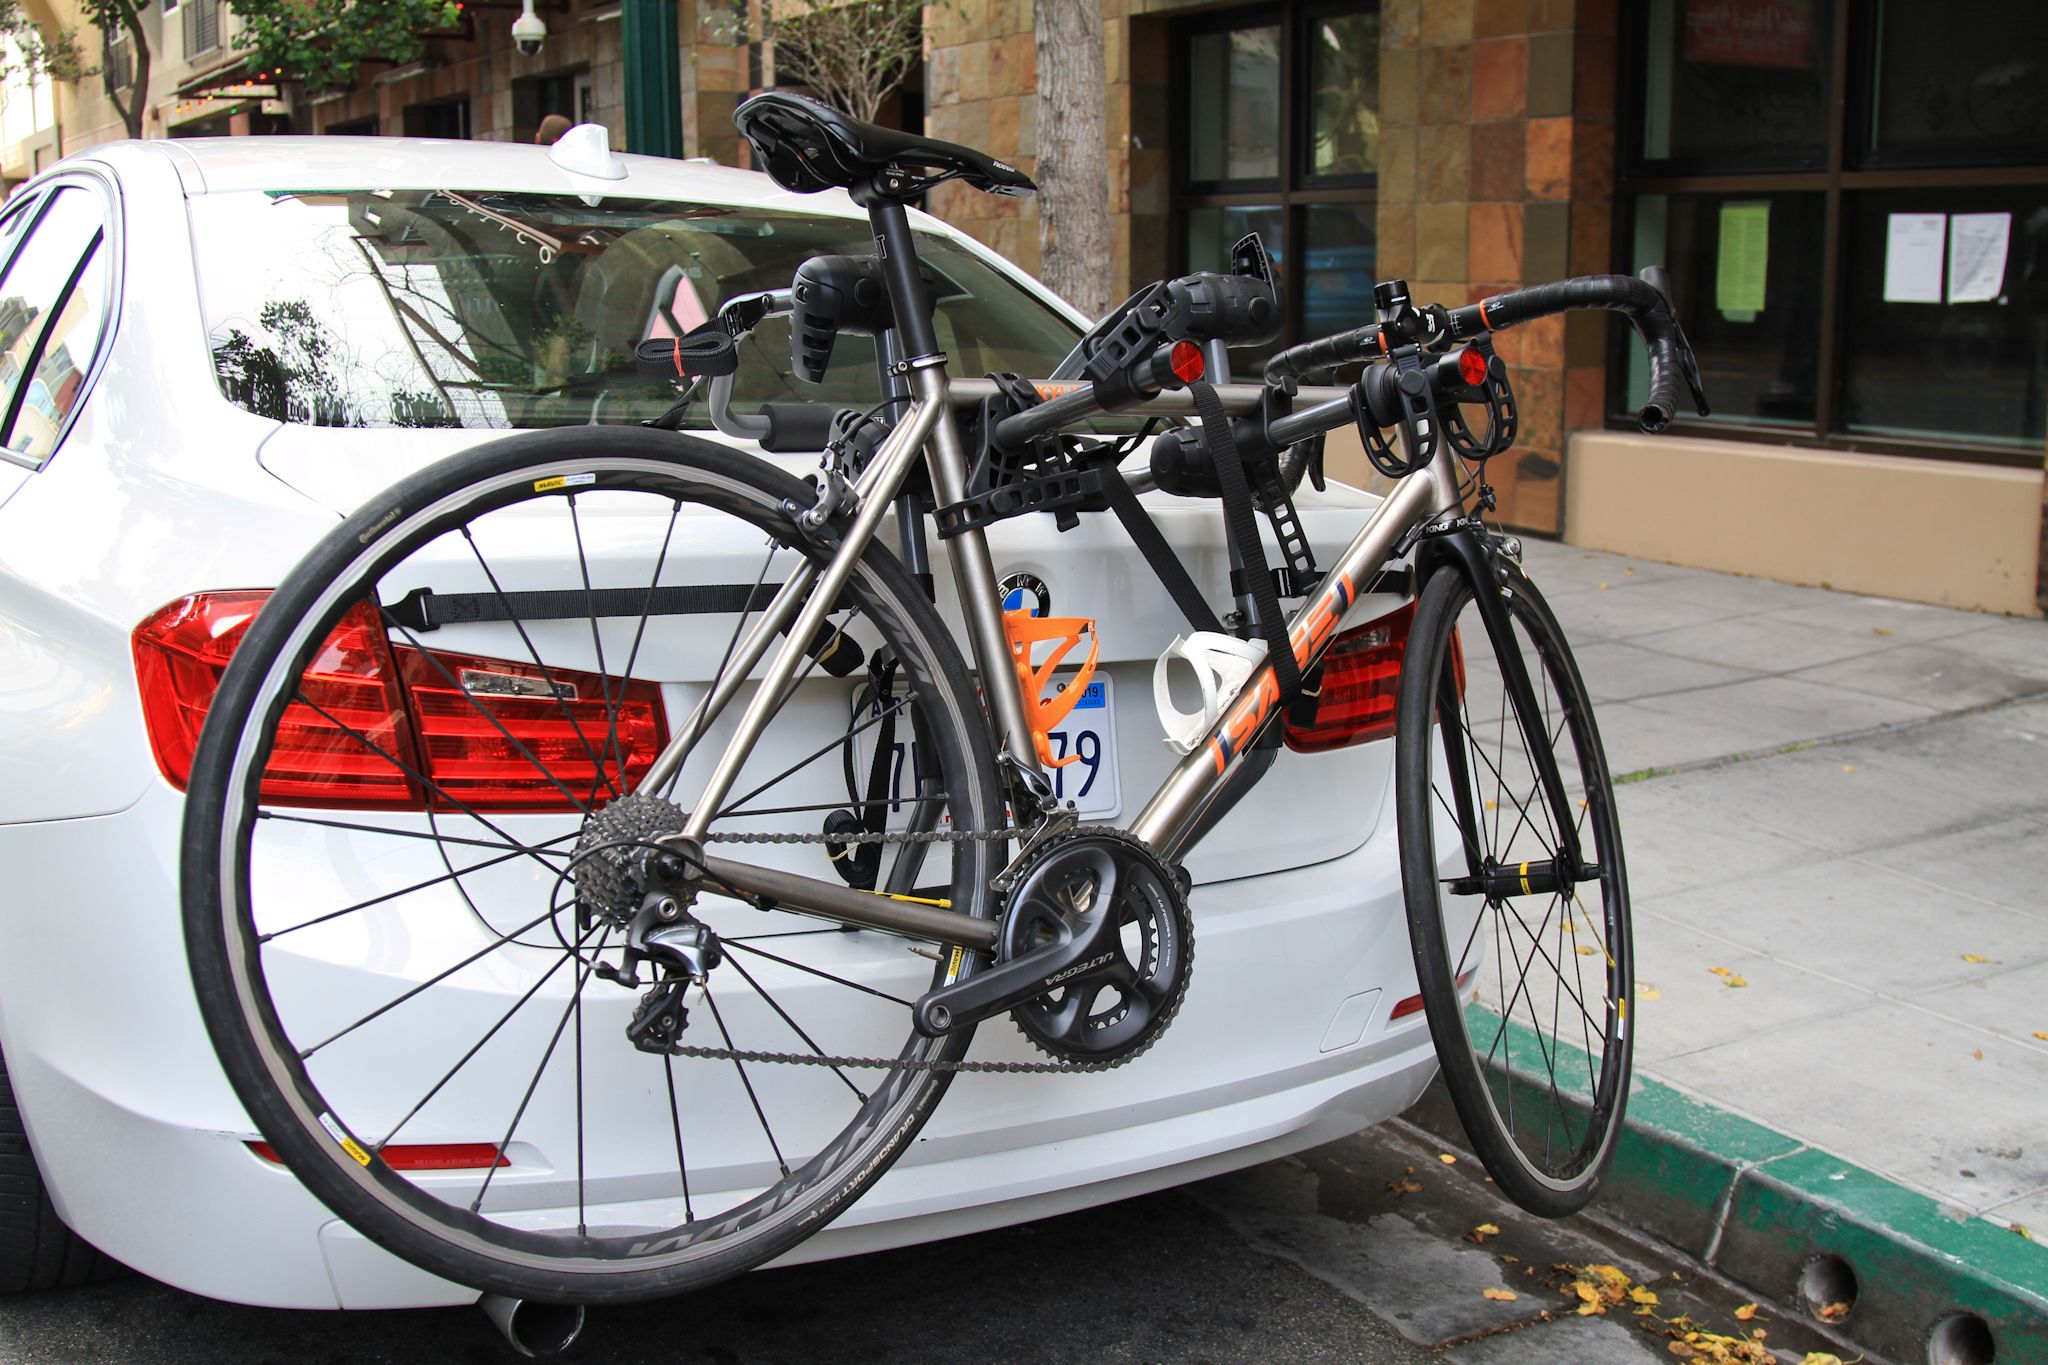 Expedition F6 Trunk Bike Rack With Images Trunk Bike Rack